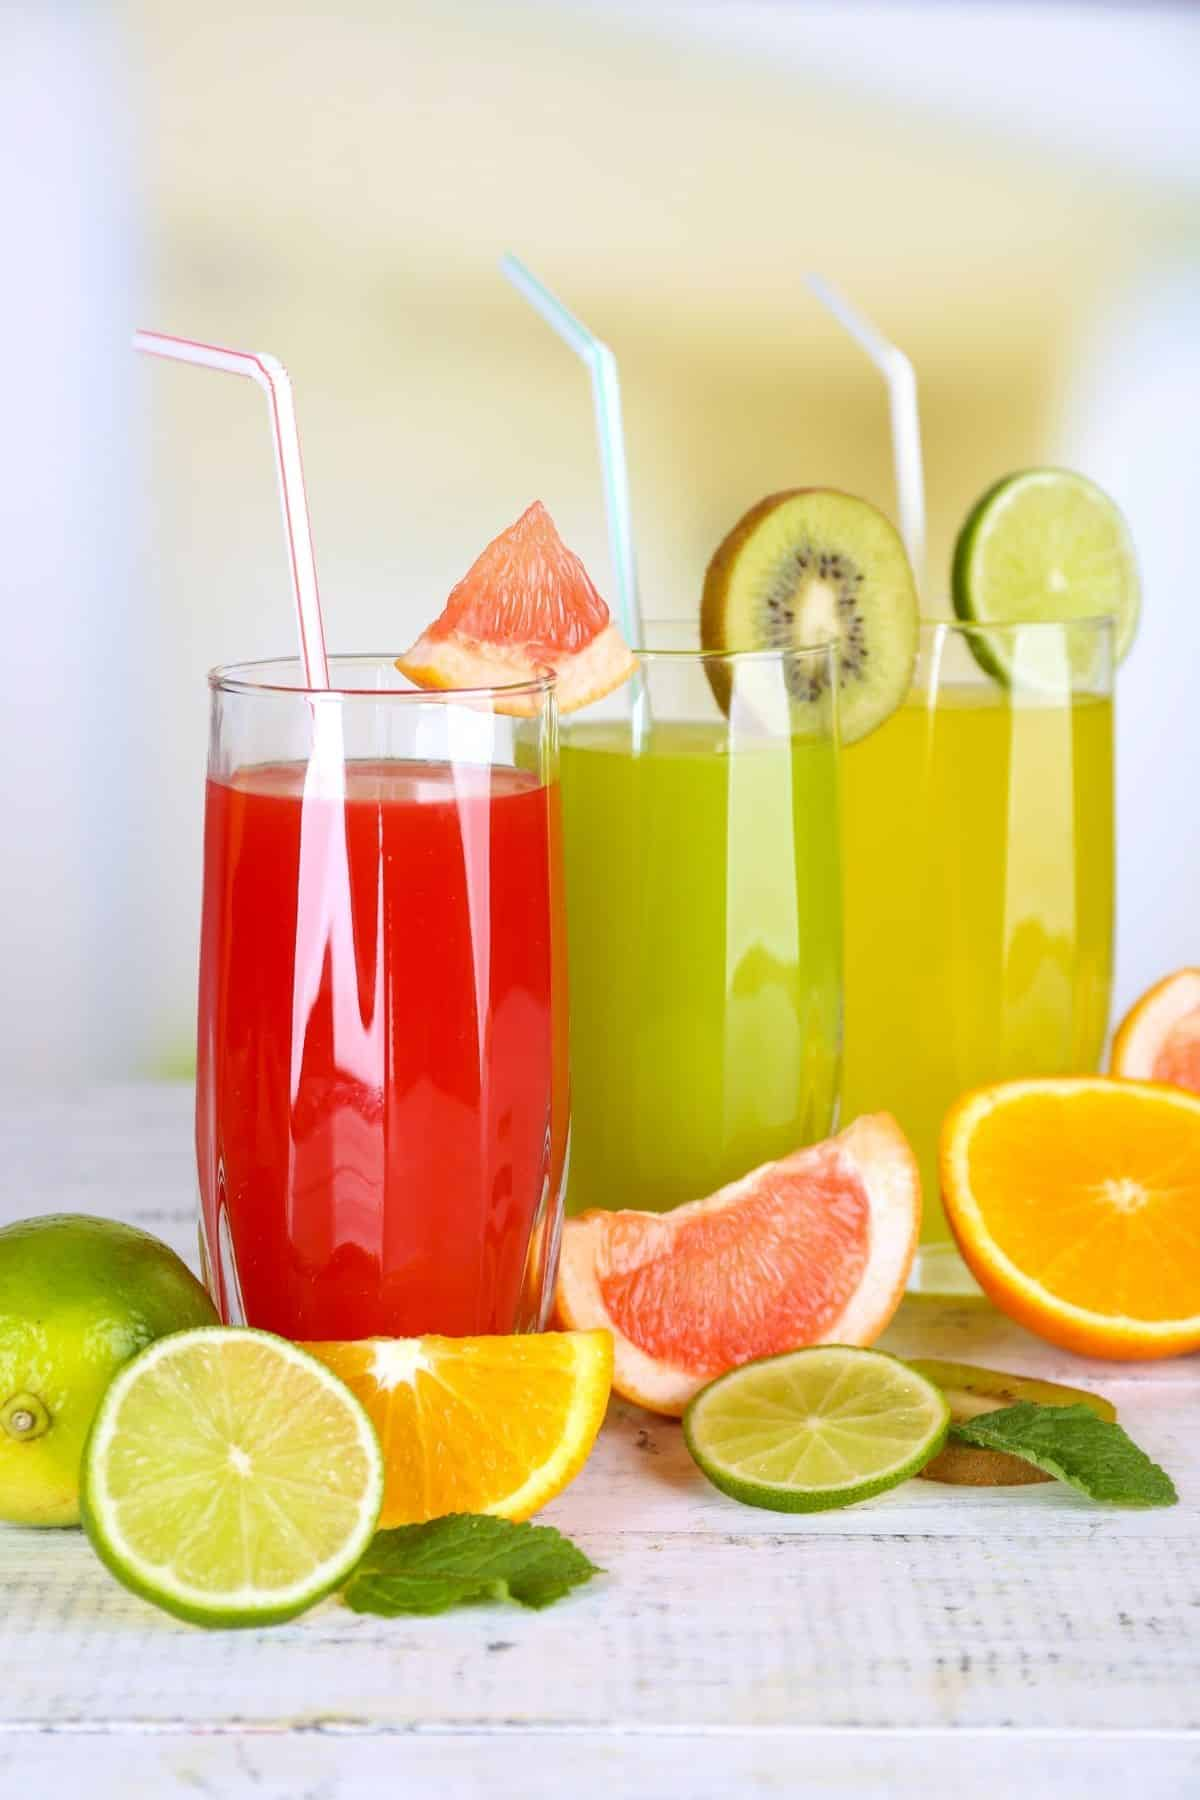 fresh fruit juices in glasses on a table